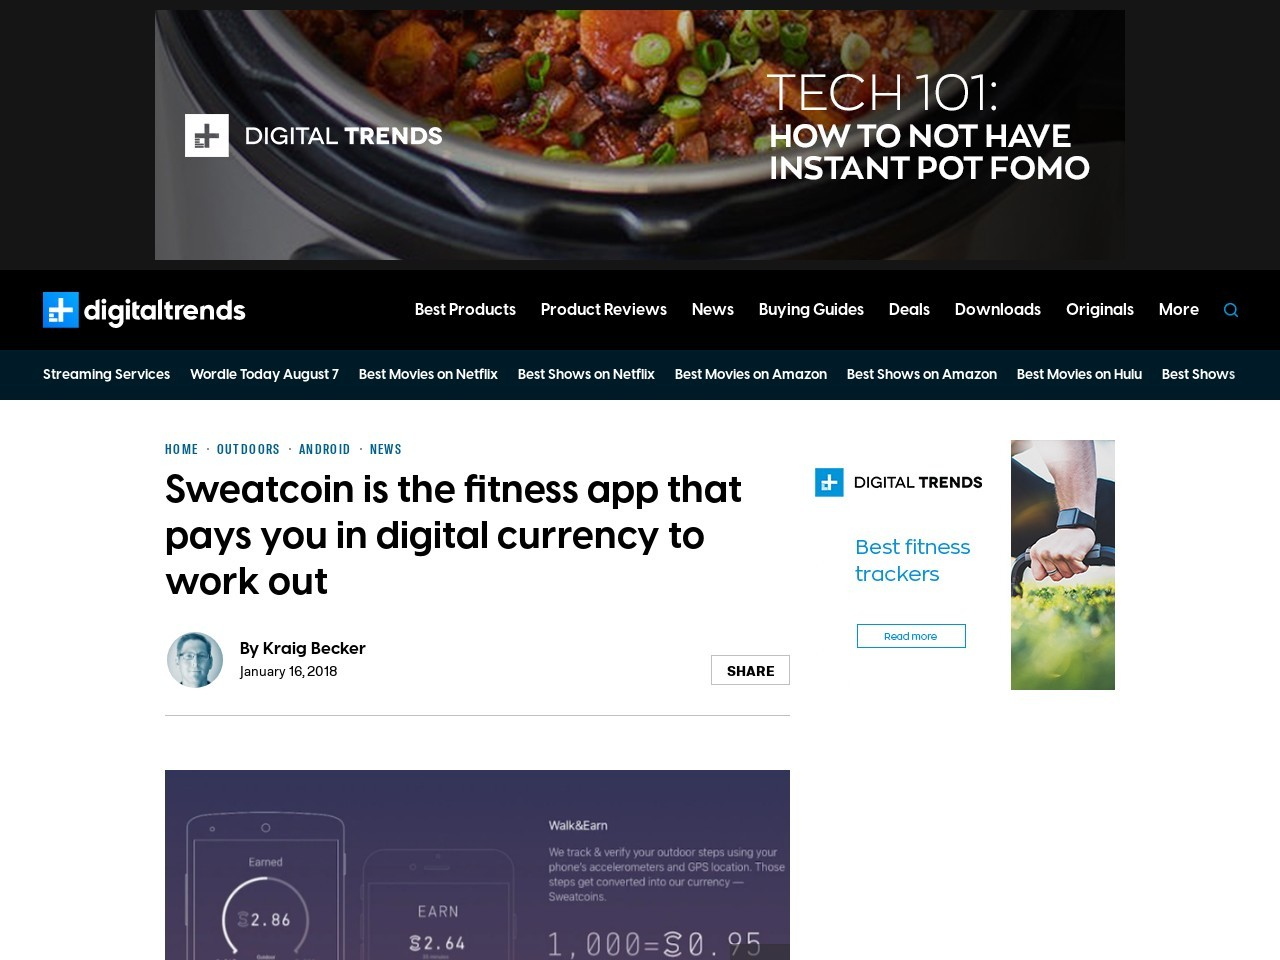 Sweatcoin is the fitness app that pays you in digital currency to…